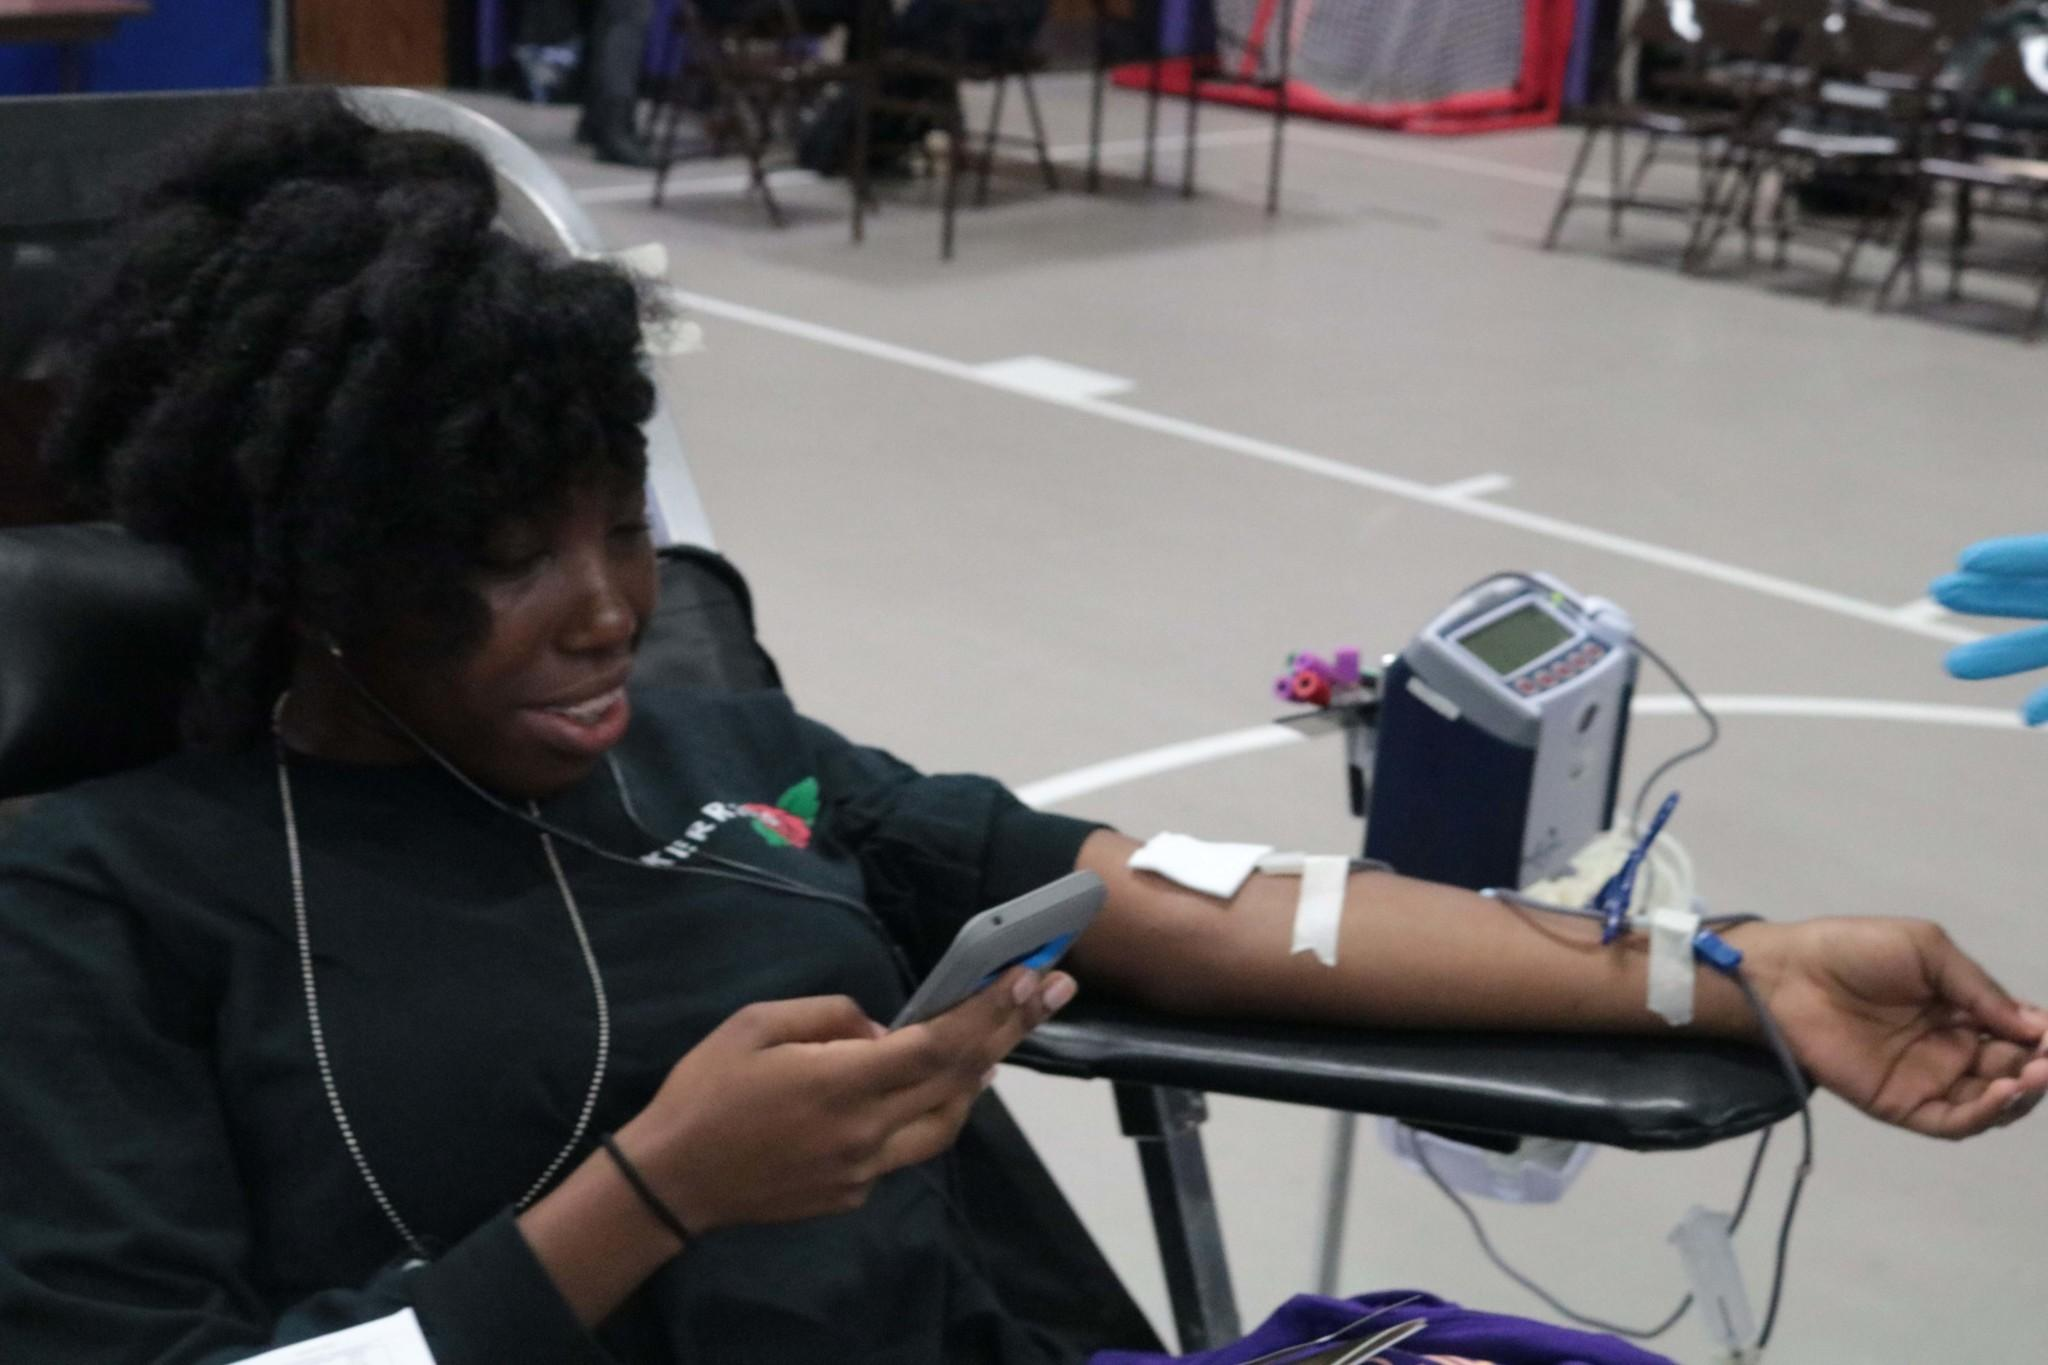 Dominique Carter, a junior, is getting her blood drawn while on her phone.